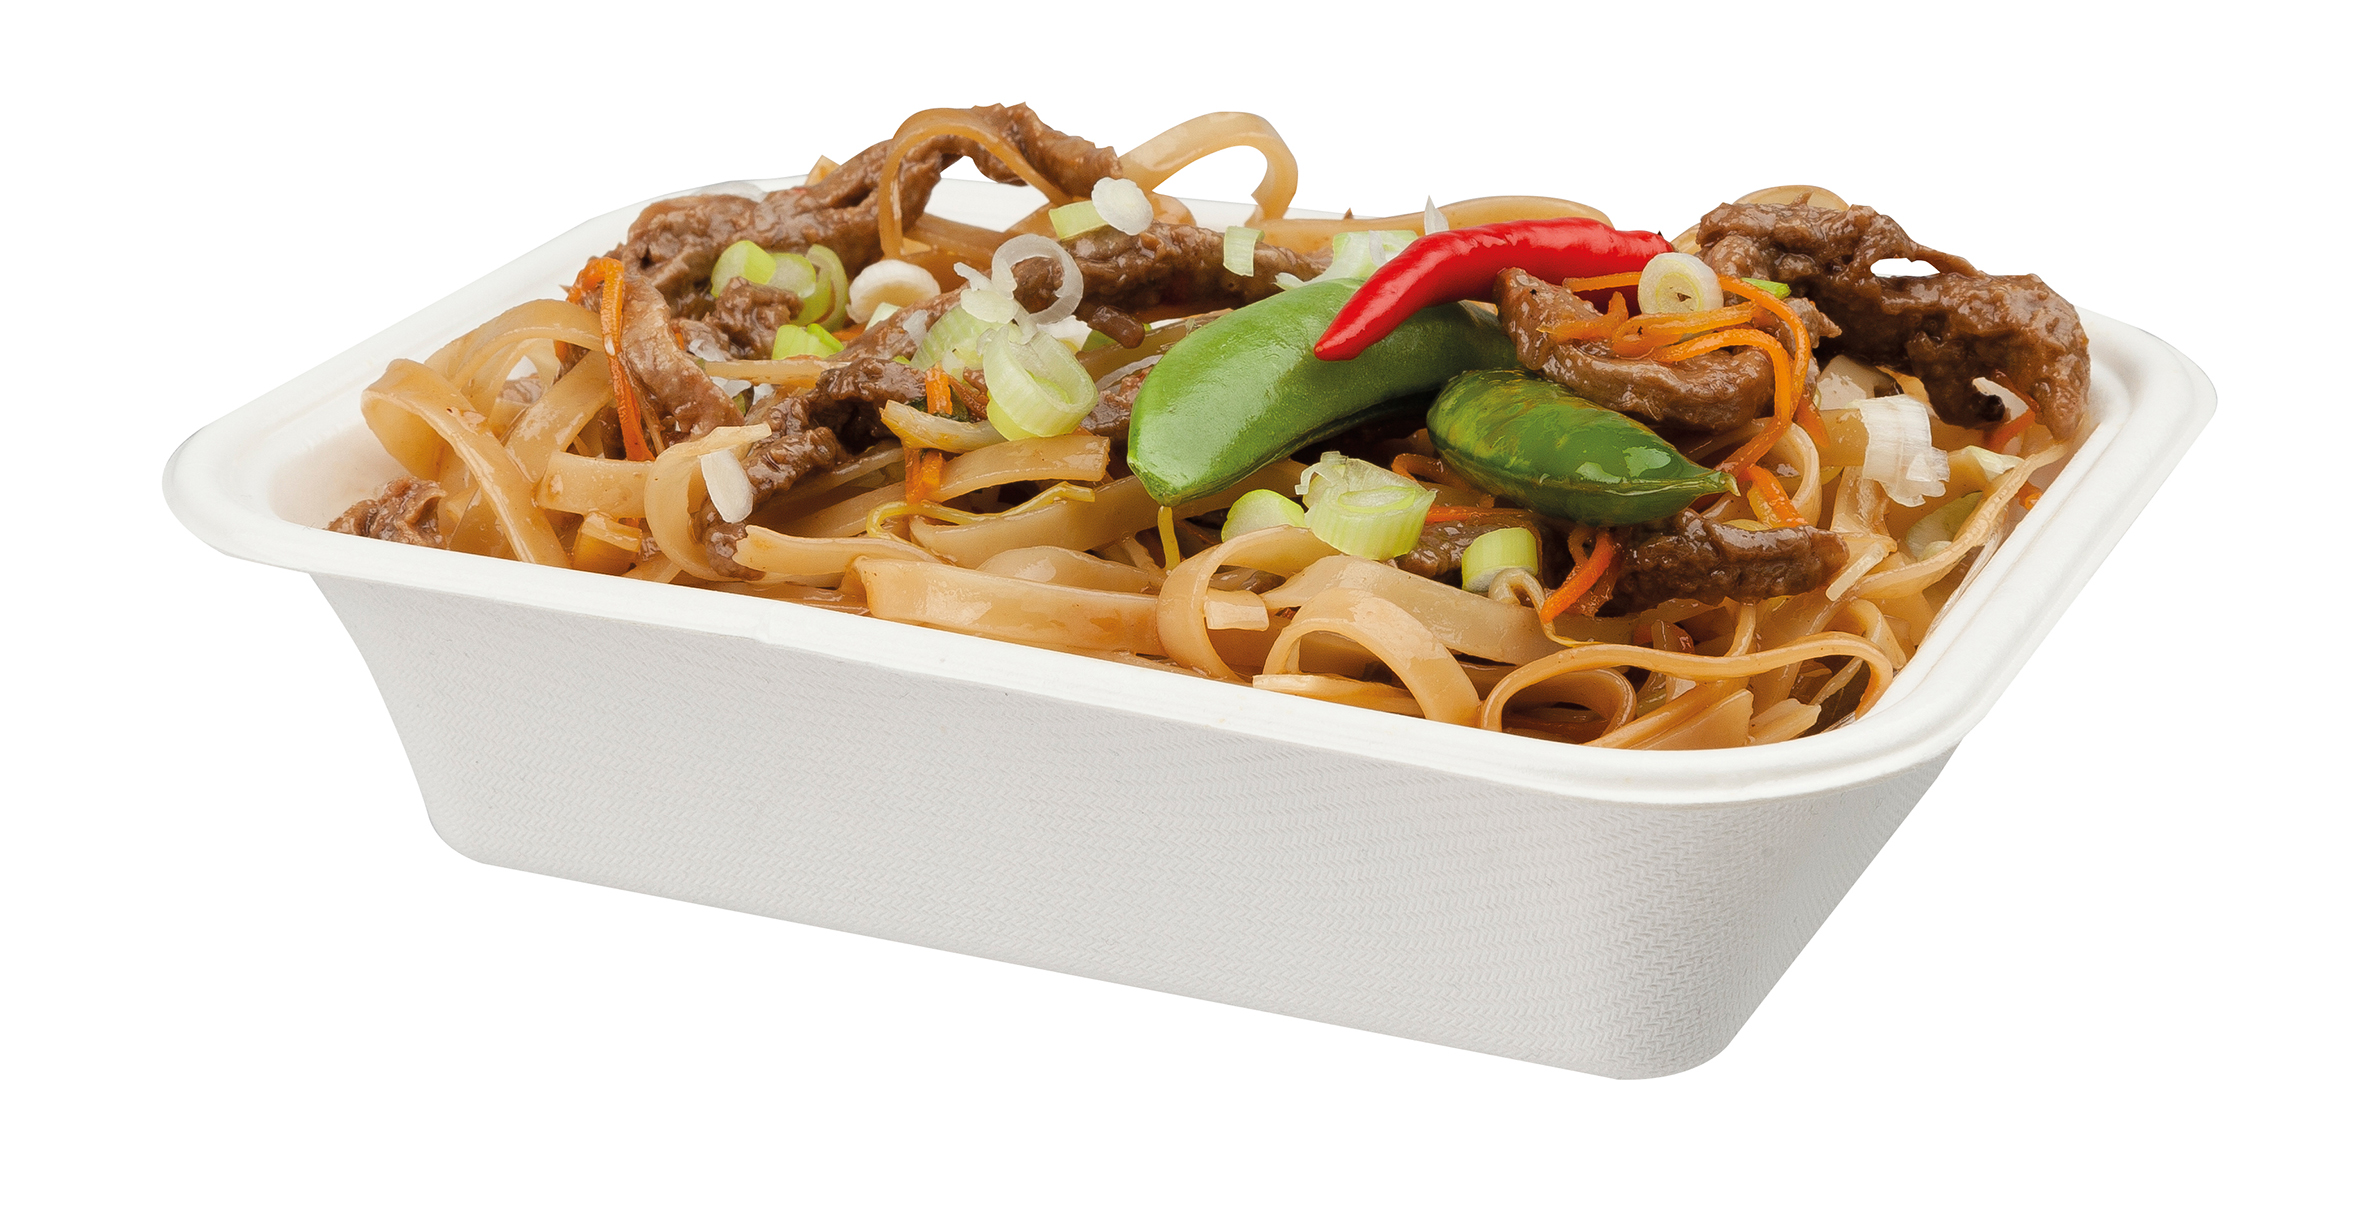 Packaging Innovation - Compostable Oven-Friendly Tray